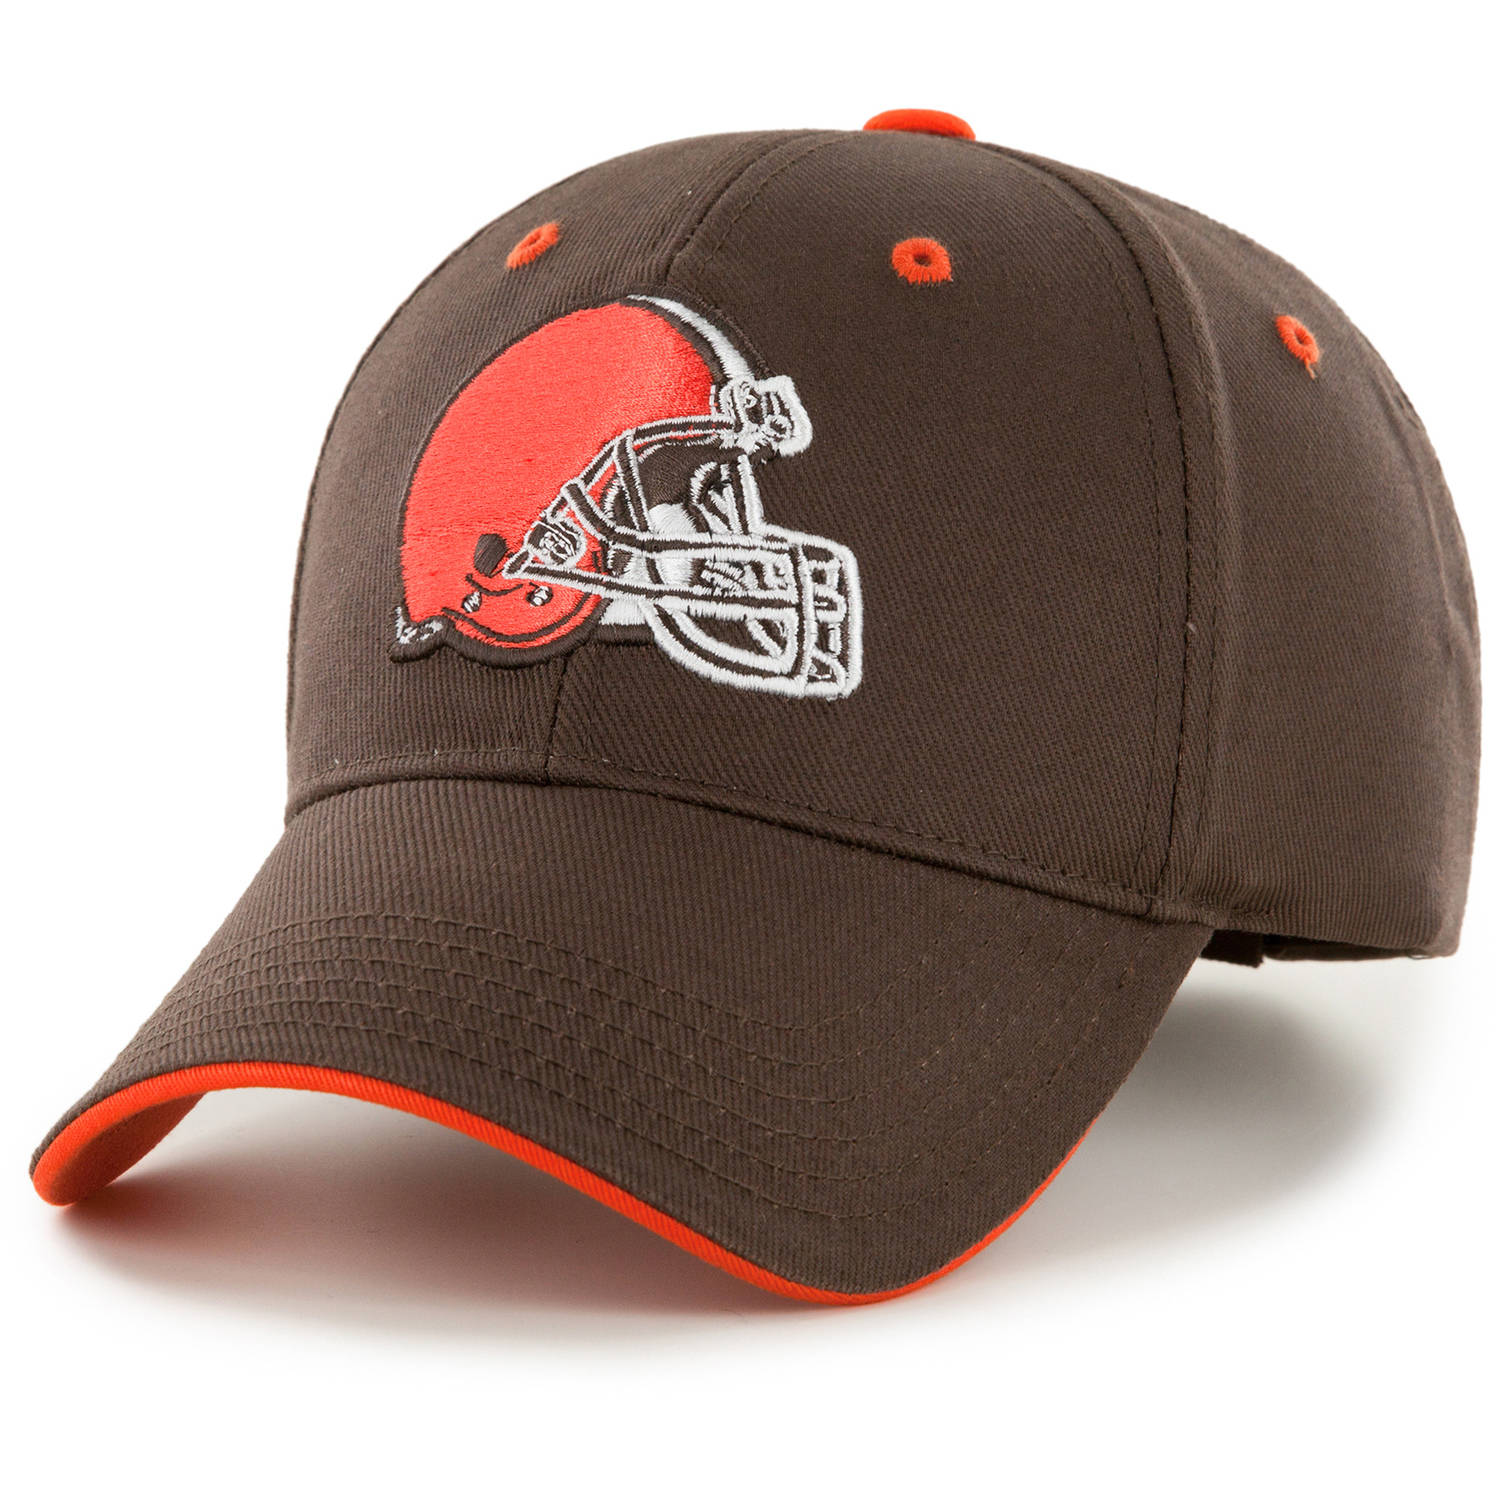 NFL Cleveland Browns Mass Money Maker Cap - Fan Favorite